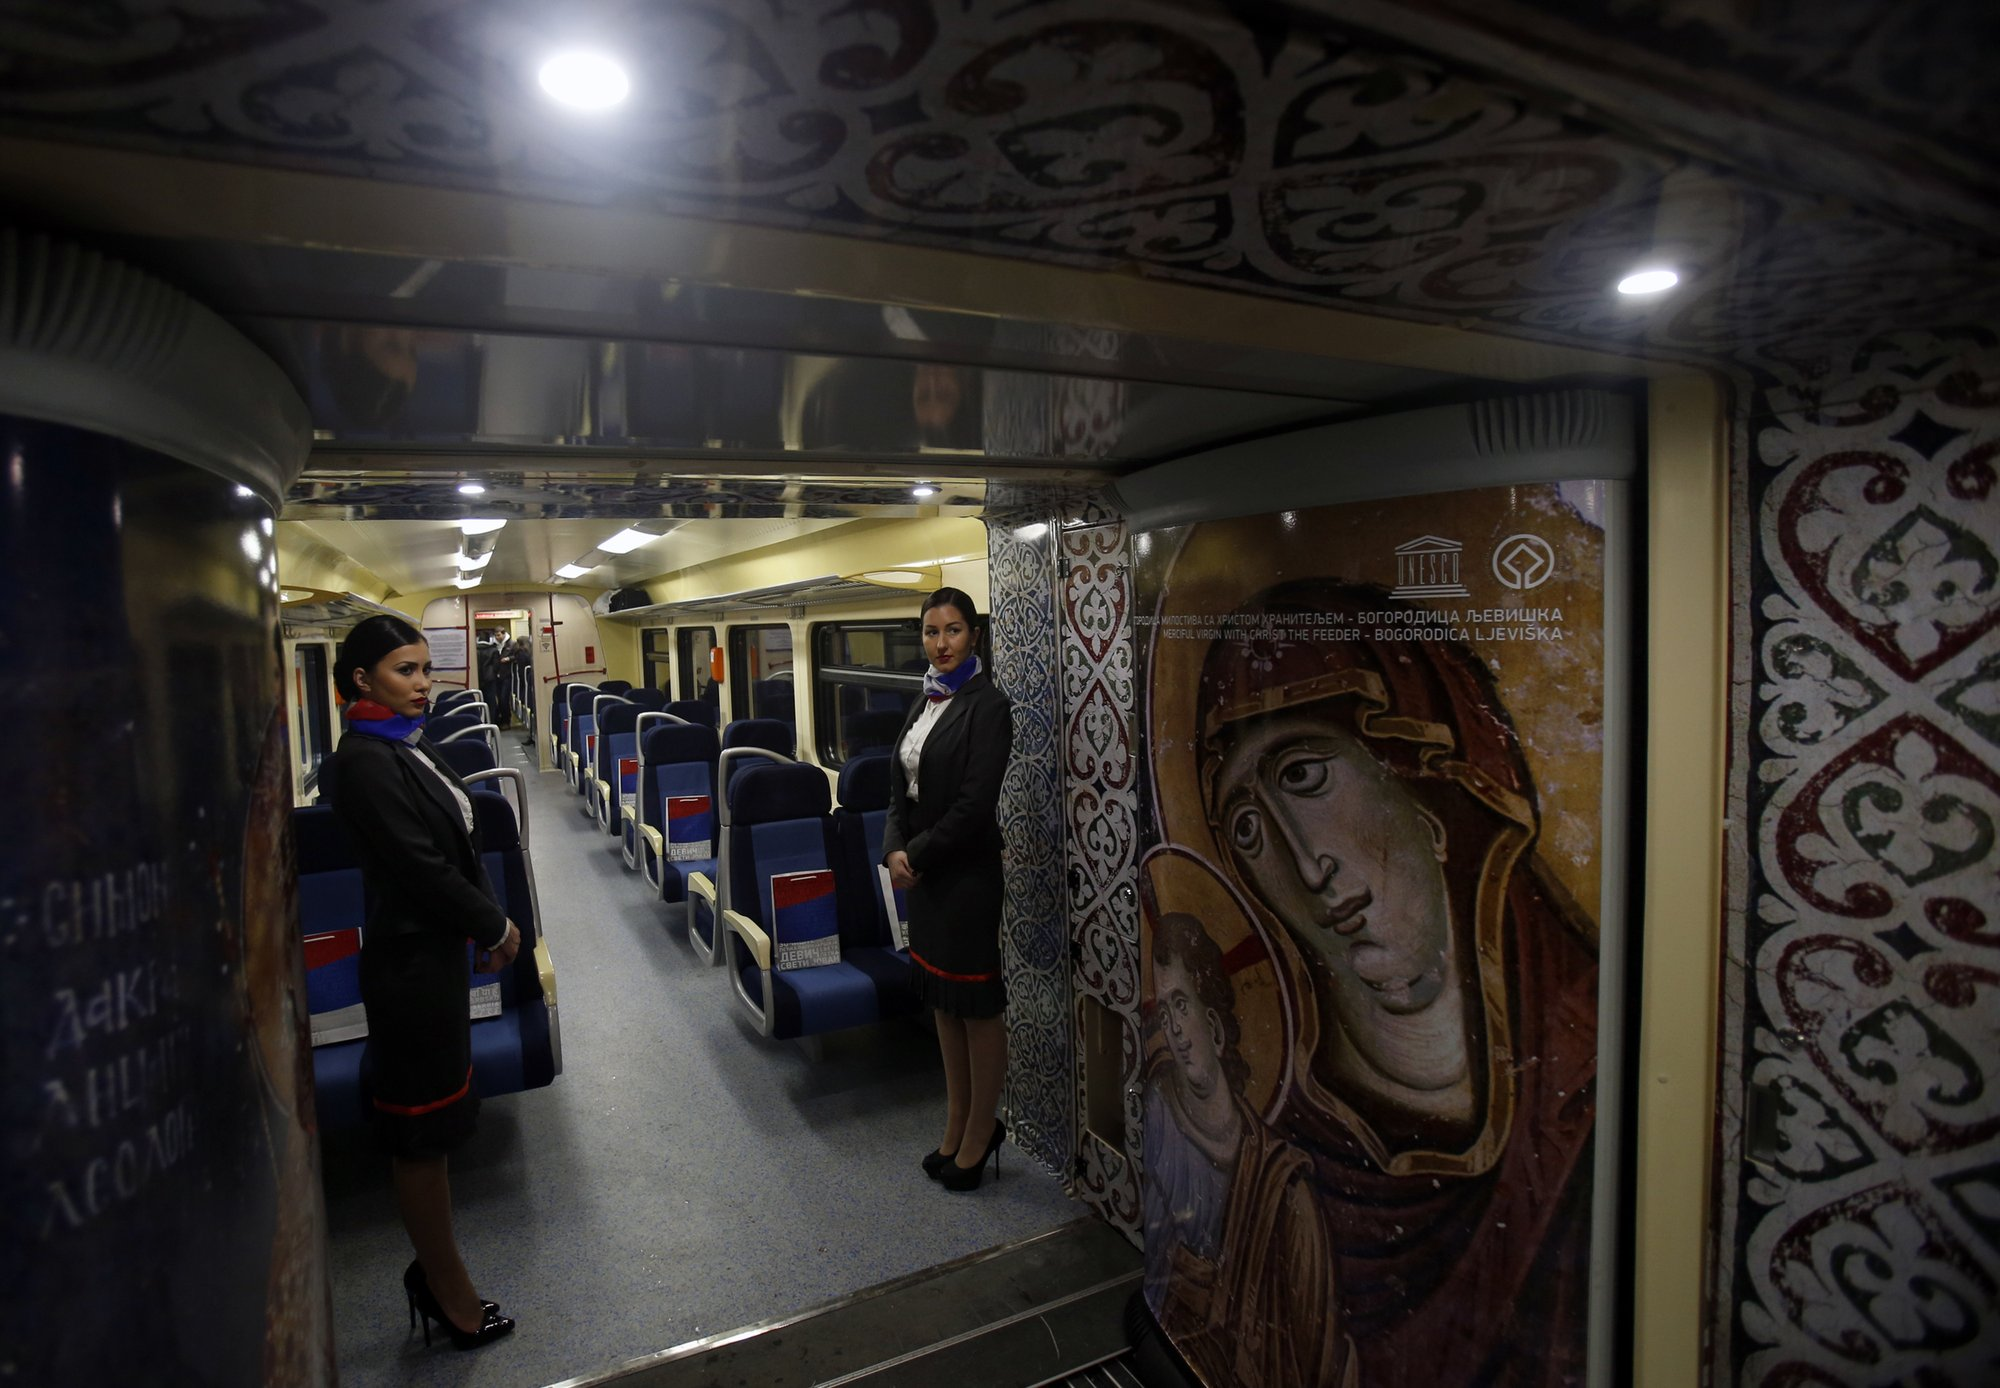 Stopped train triggers major political row in Balkans